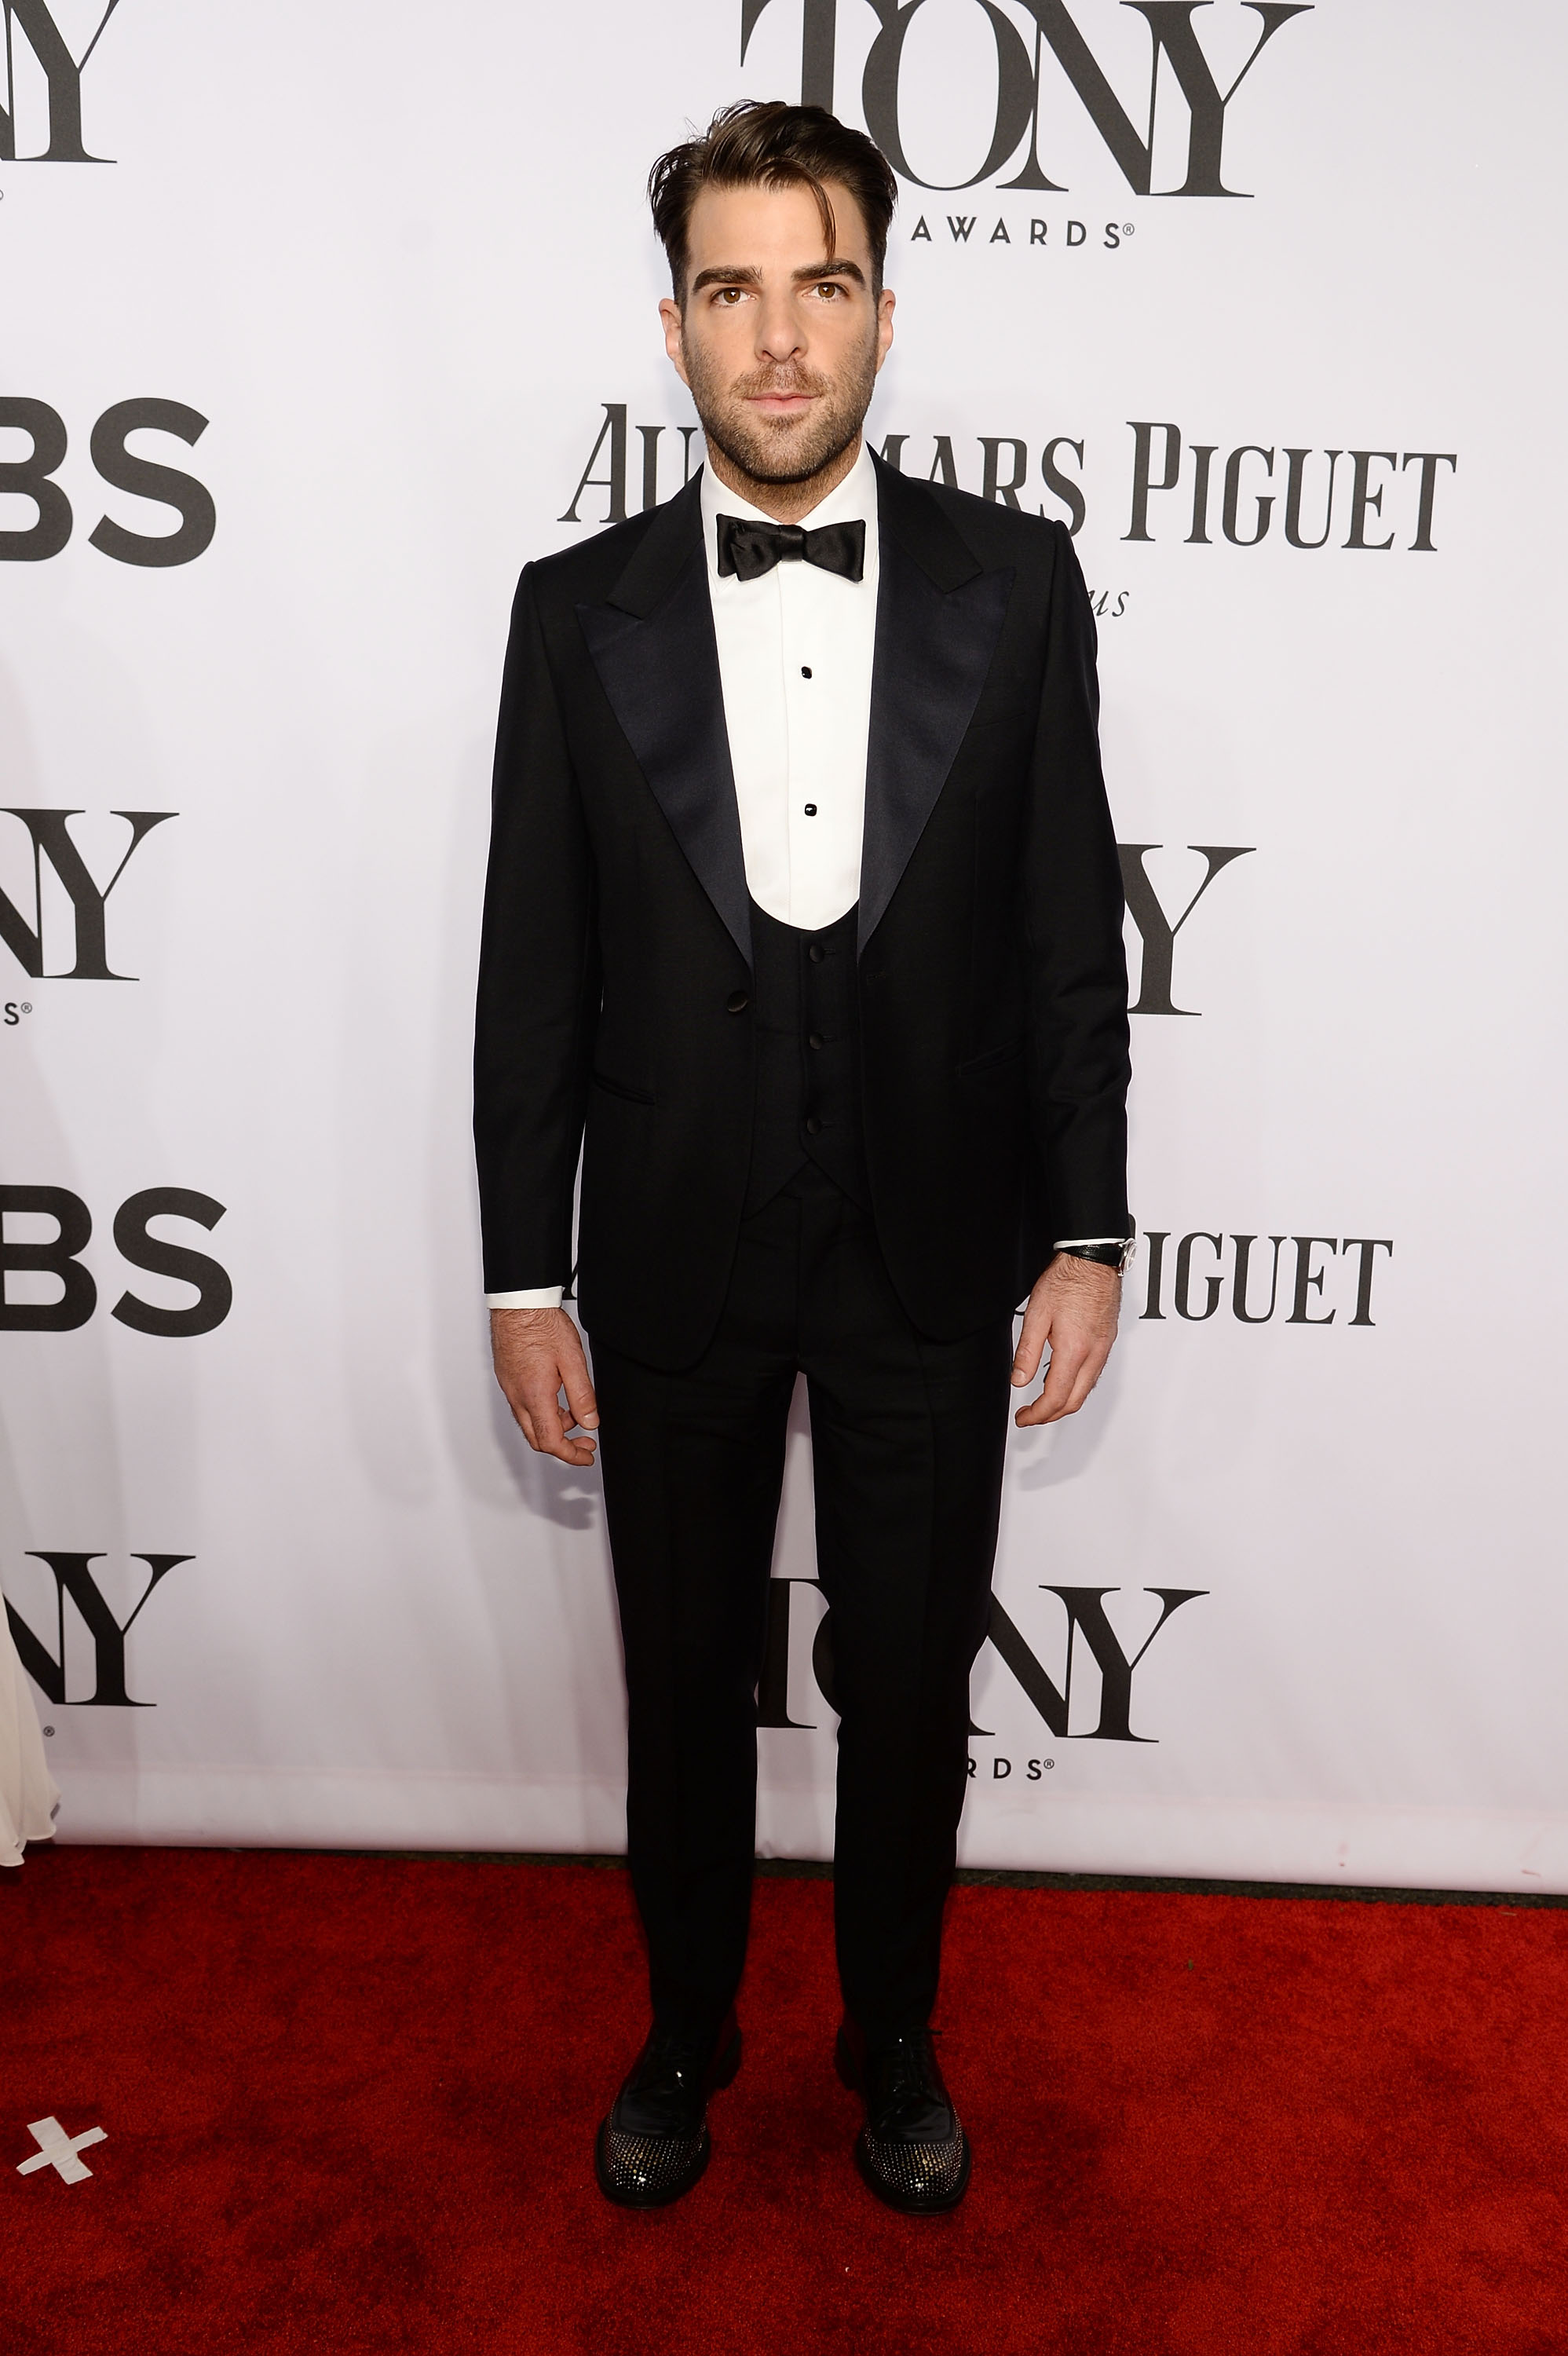 Actor Zachary Quinto attends the 68th Annual Tony Awards at Radio City Music Hall on June 8, 2014 in New York City.